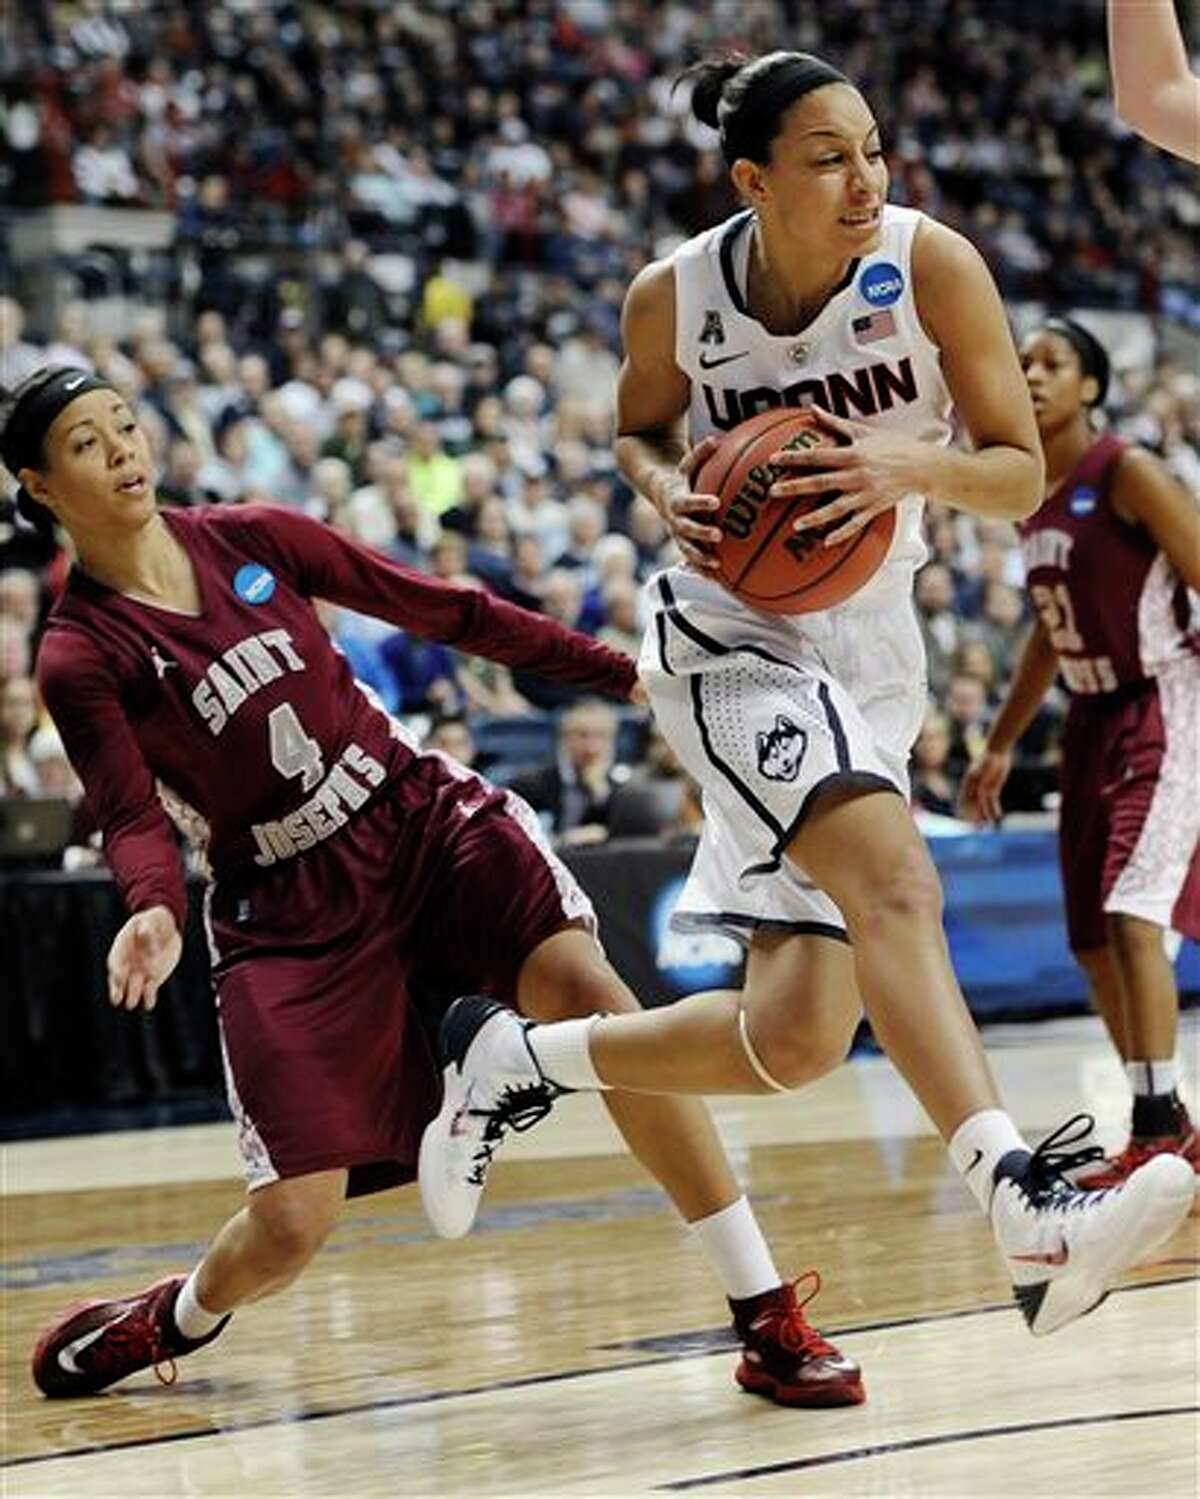 Connecticut's Bria Hartley, right, drives past Saint Joseph's Natasha Cloud, left, during the first half of a second-round game of the NCAA women's college basketball tournament, Tuesday, March 25, 2014, in Storrs, Conn. (AP Photo/Jessica Hill)